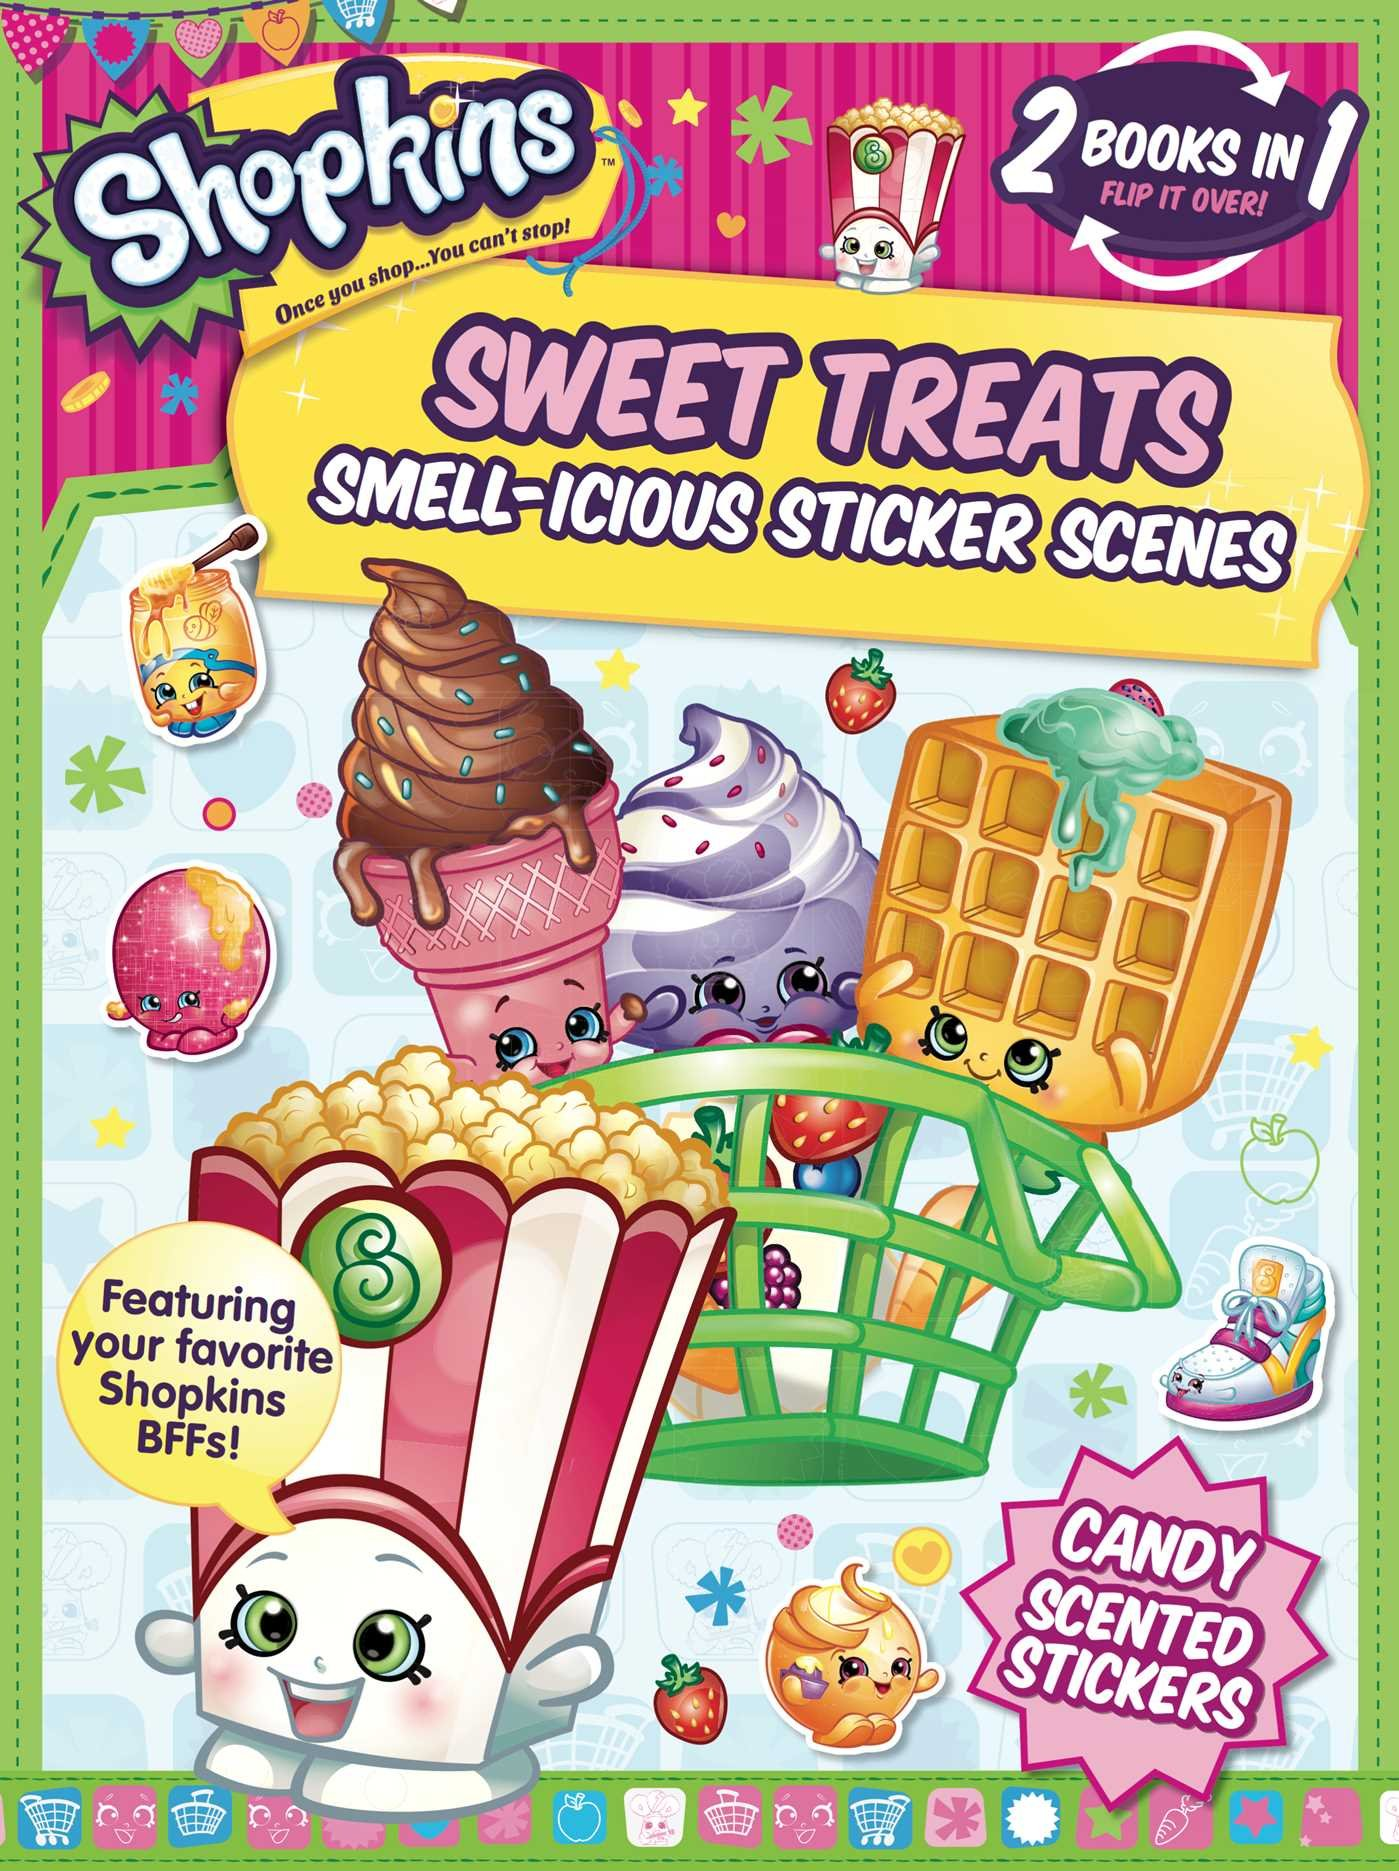 Where to buy shopkins coloring book - Shopkins Sweet Treats Cheeky Chocolate Sticker And Activity Book Little Bee Books 9781499802245 Amazon Com Books